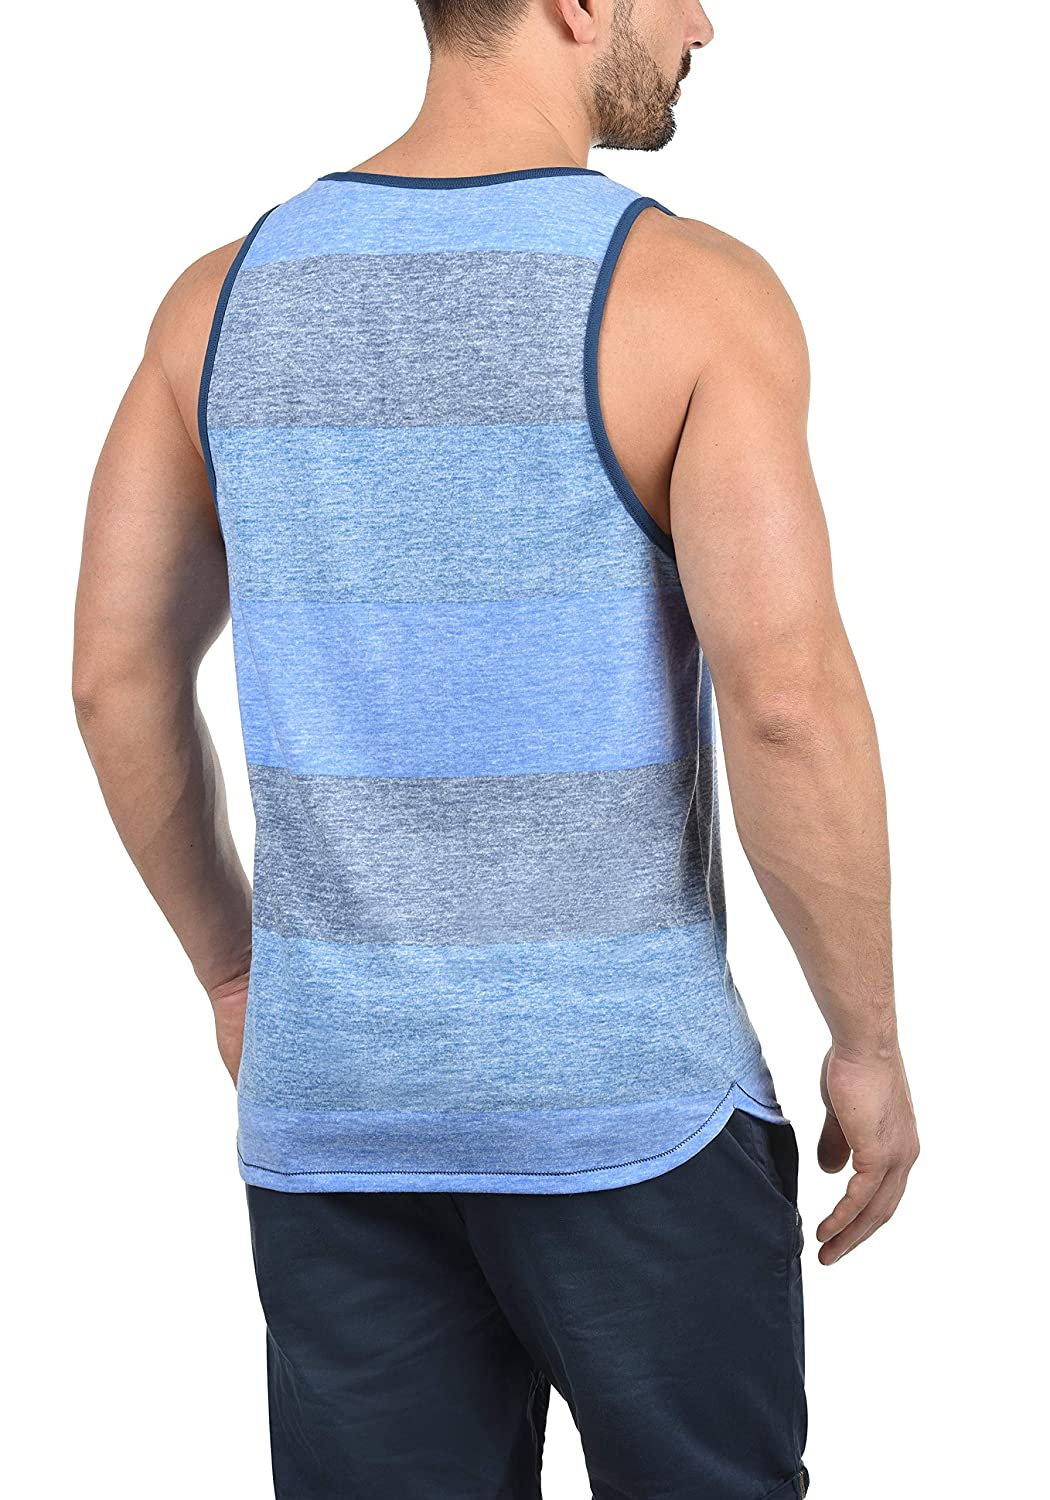 !Solid Charan Camiseta sin Mangas Hombre